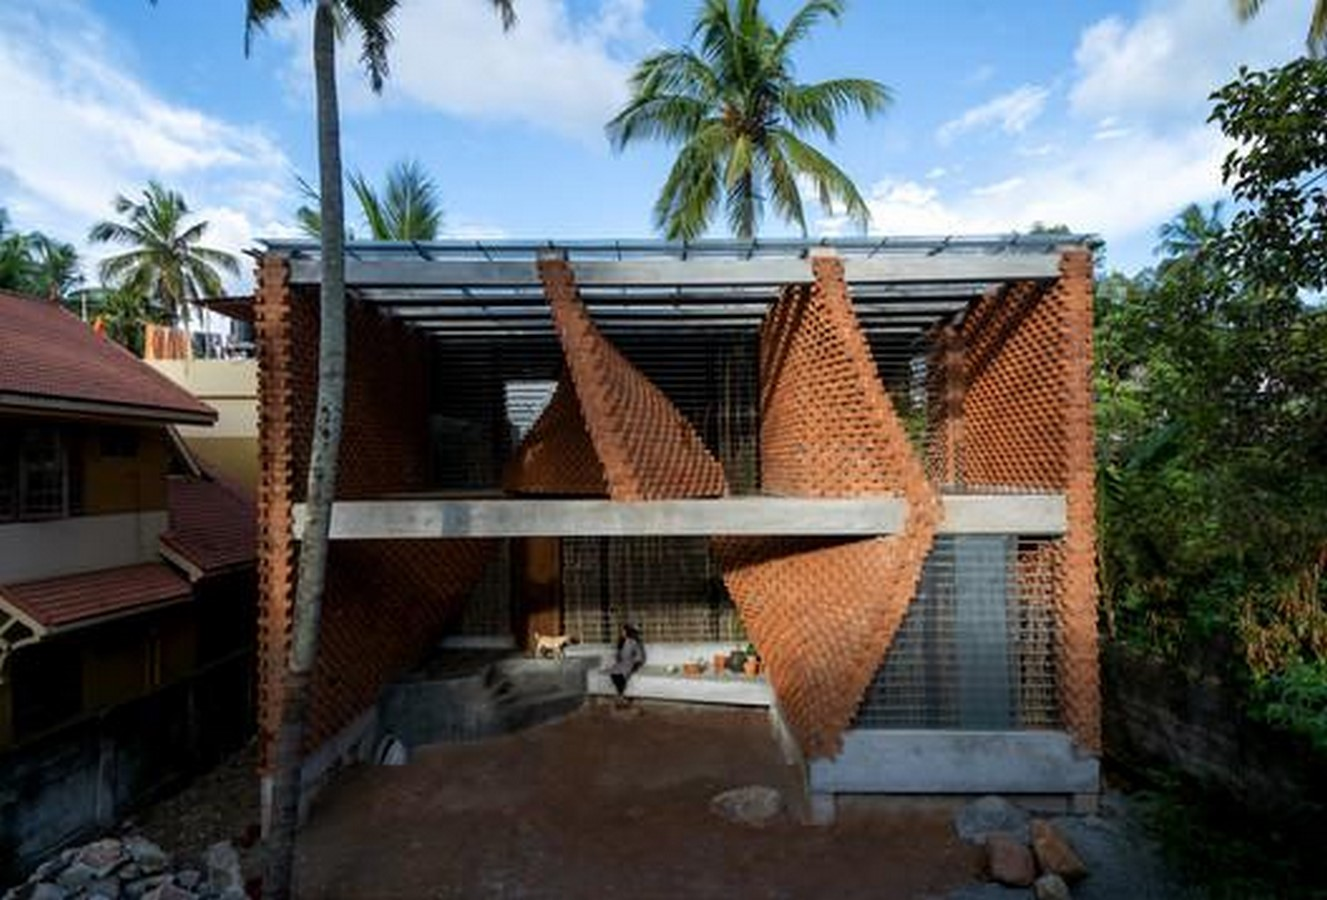 Pirouette house in india defines Rat trap bond masonry technique built by wallmakers - Sheet1